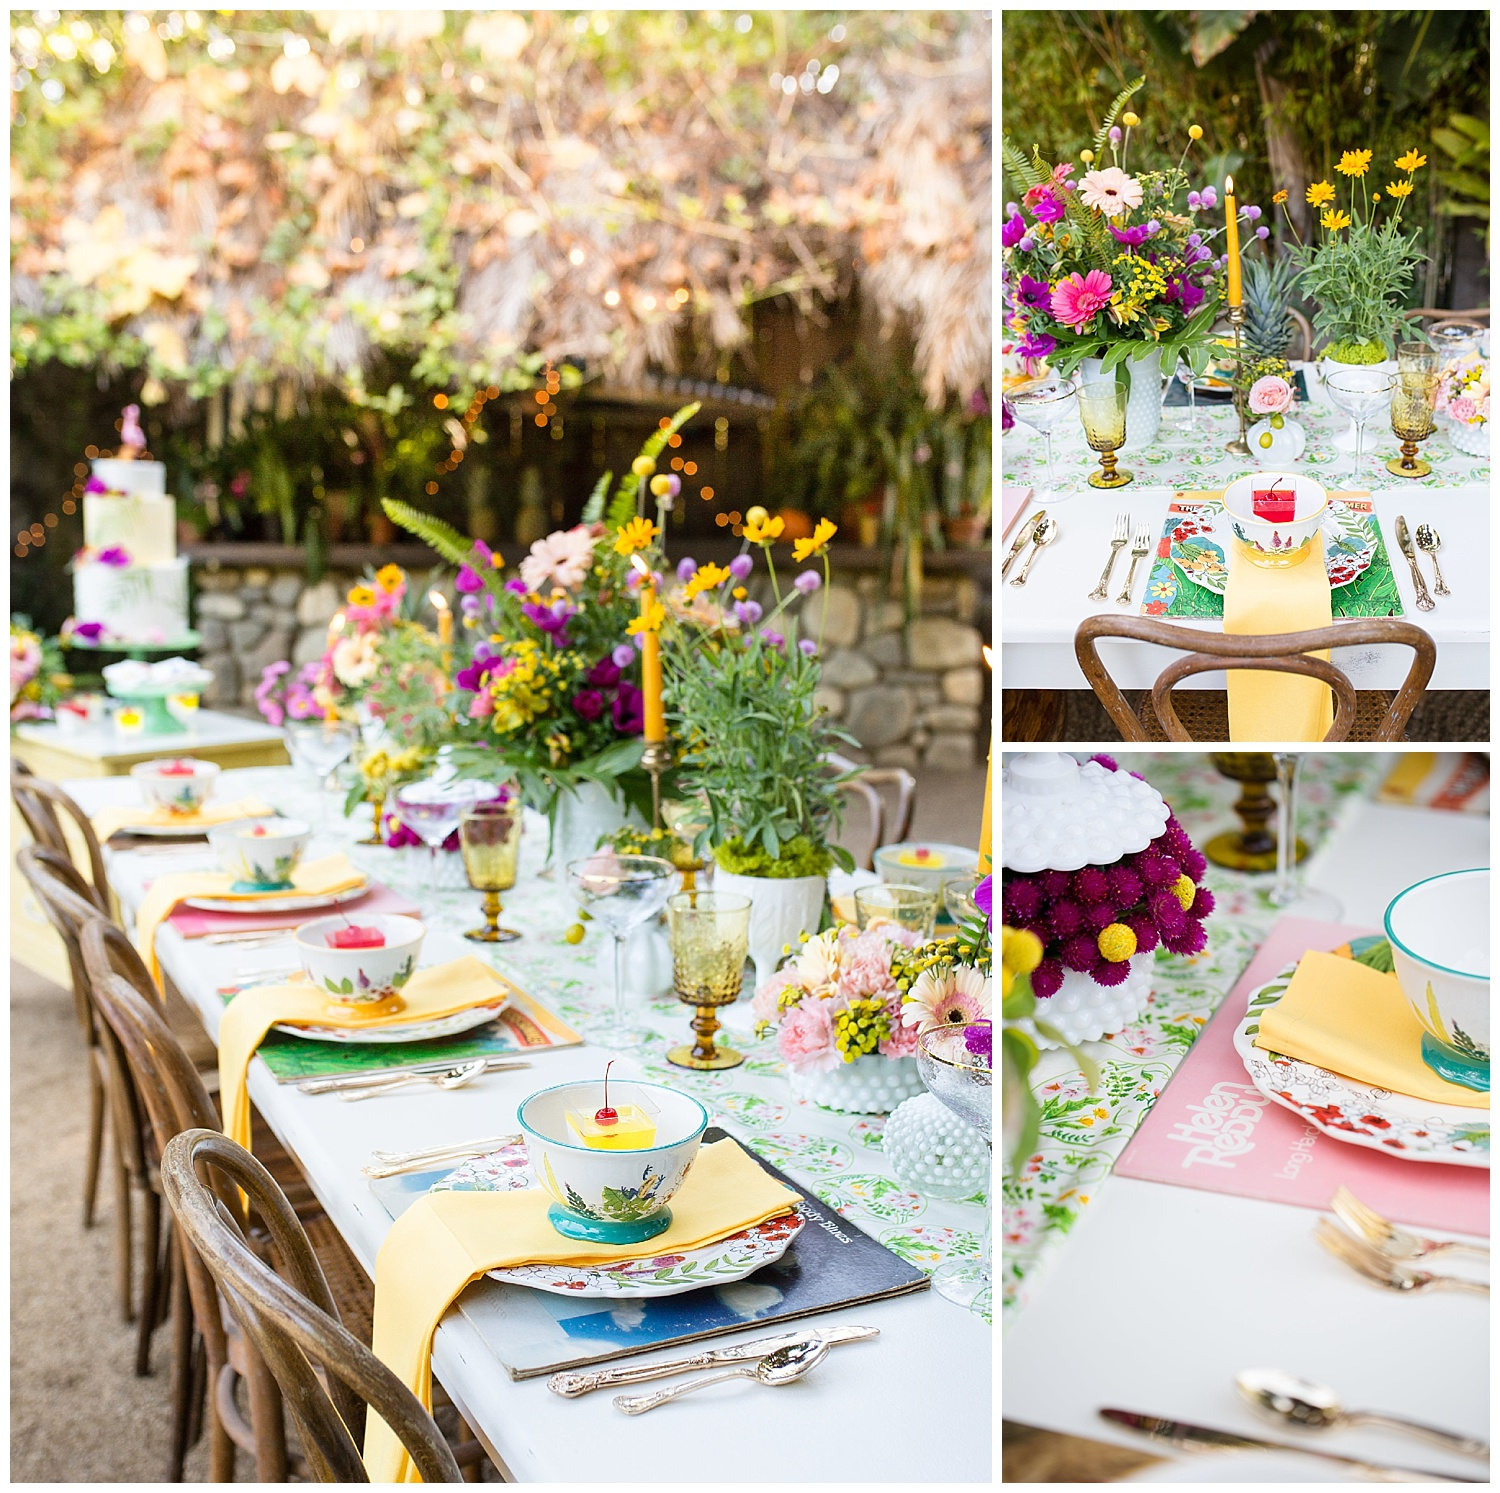 Colorful-table-inspired-wedding-holly-farm.jpg